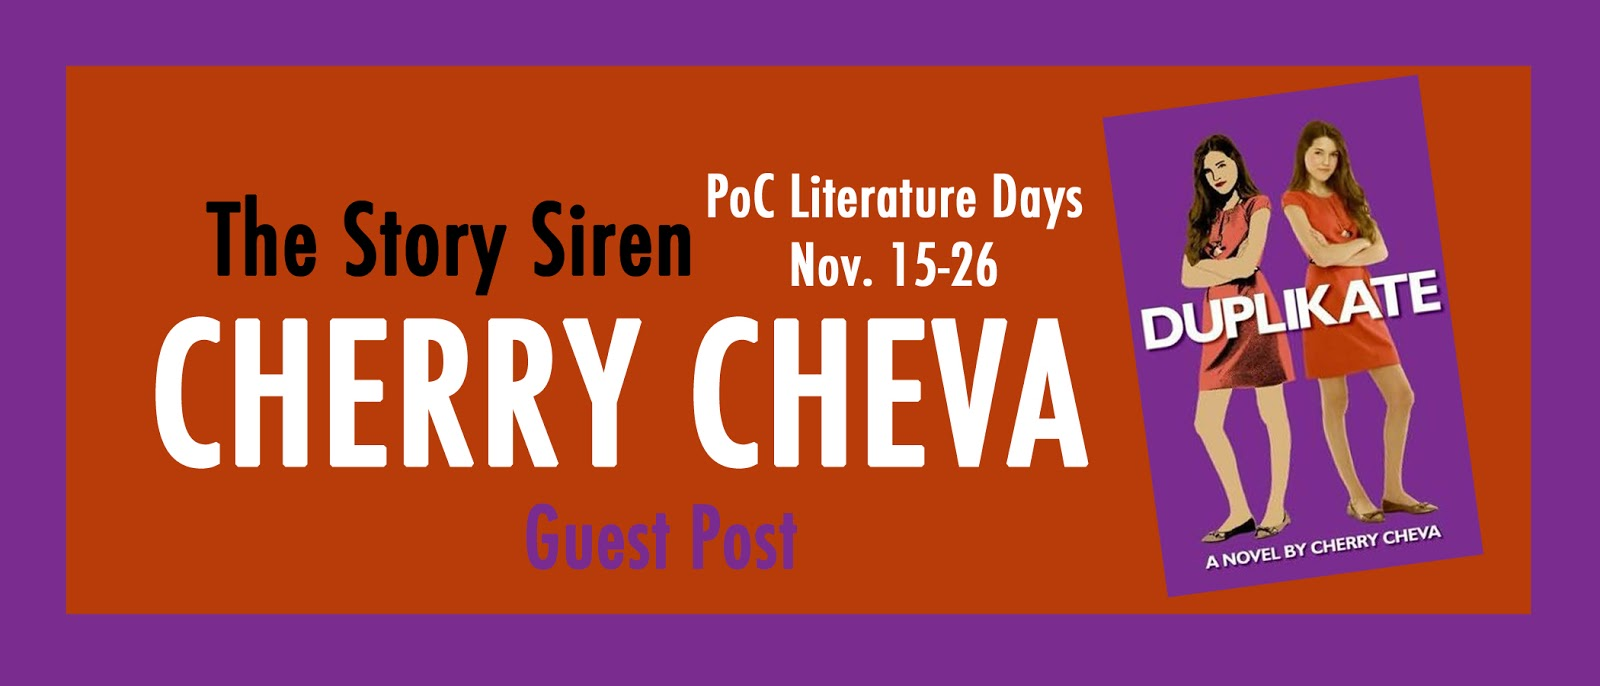 Guest Post: Cherry Cheva